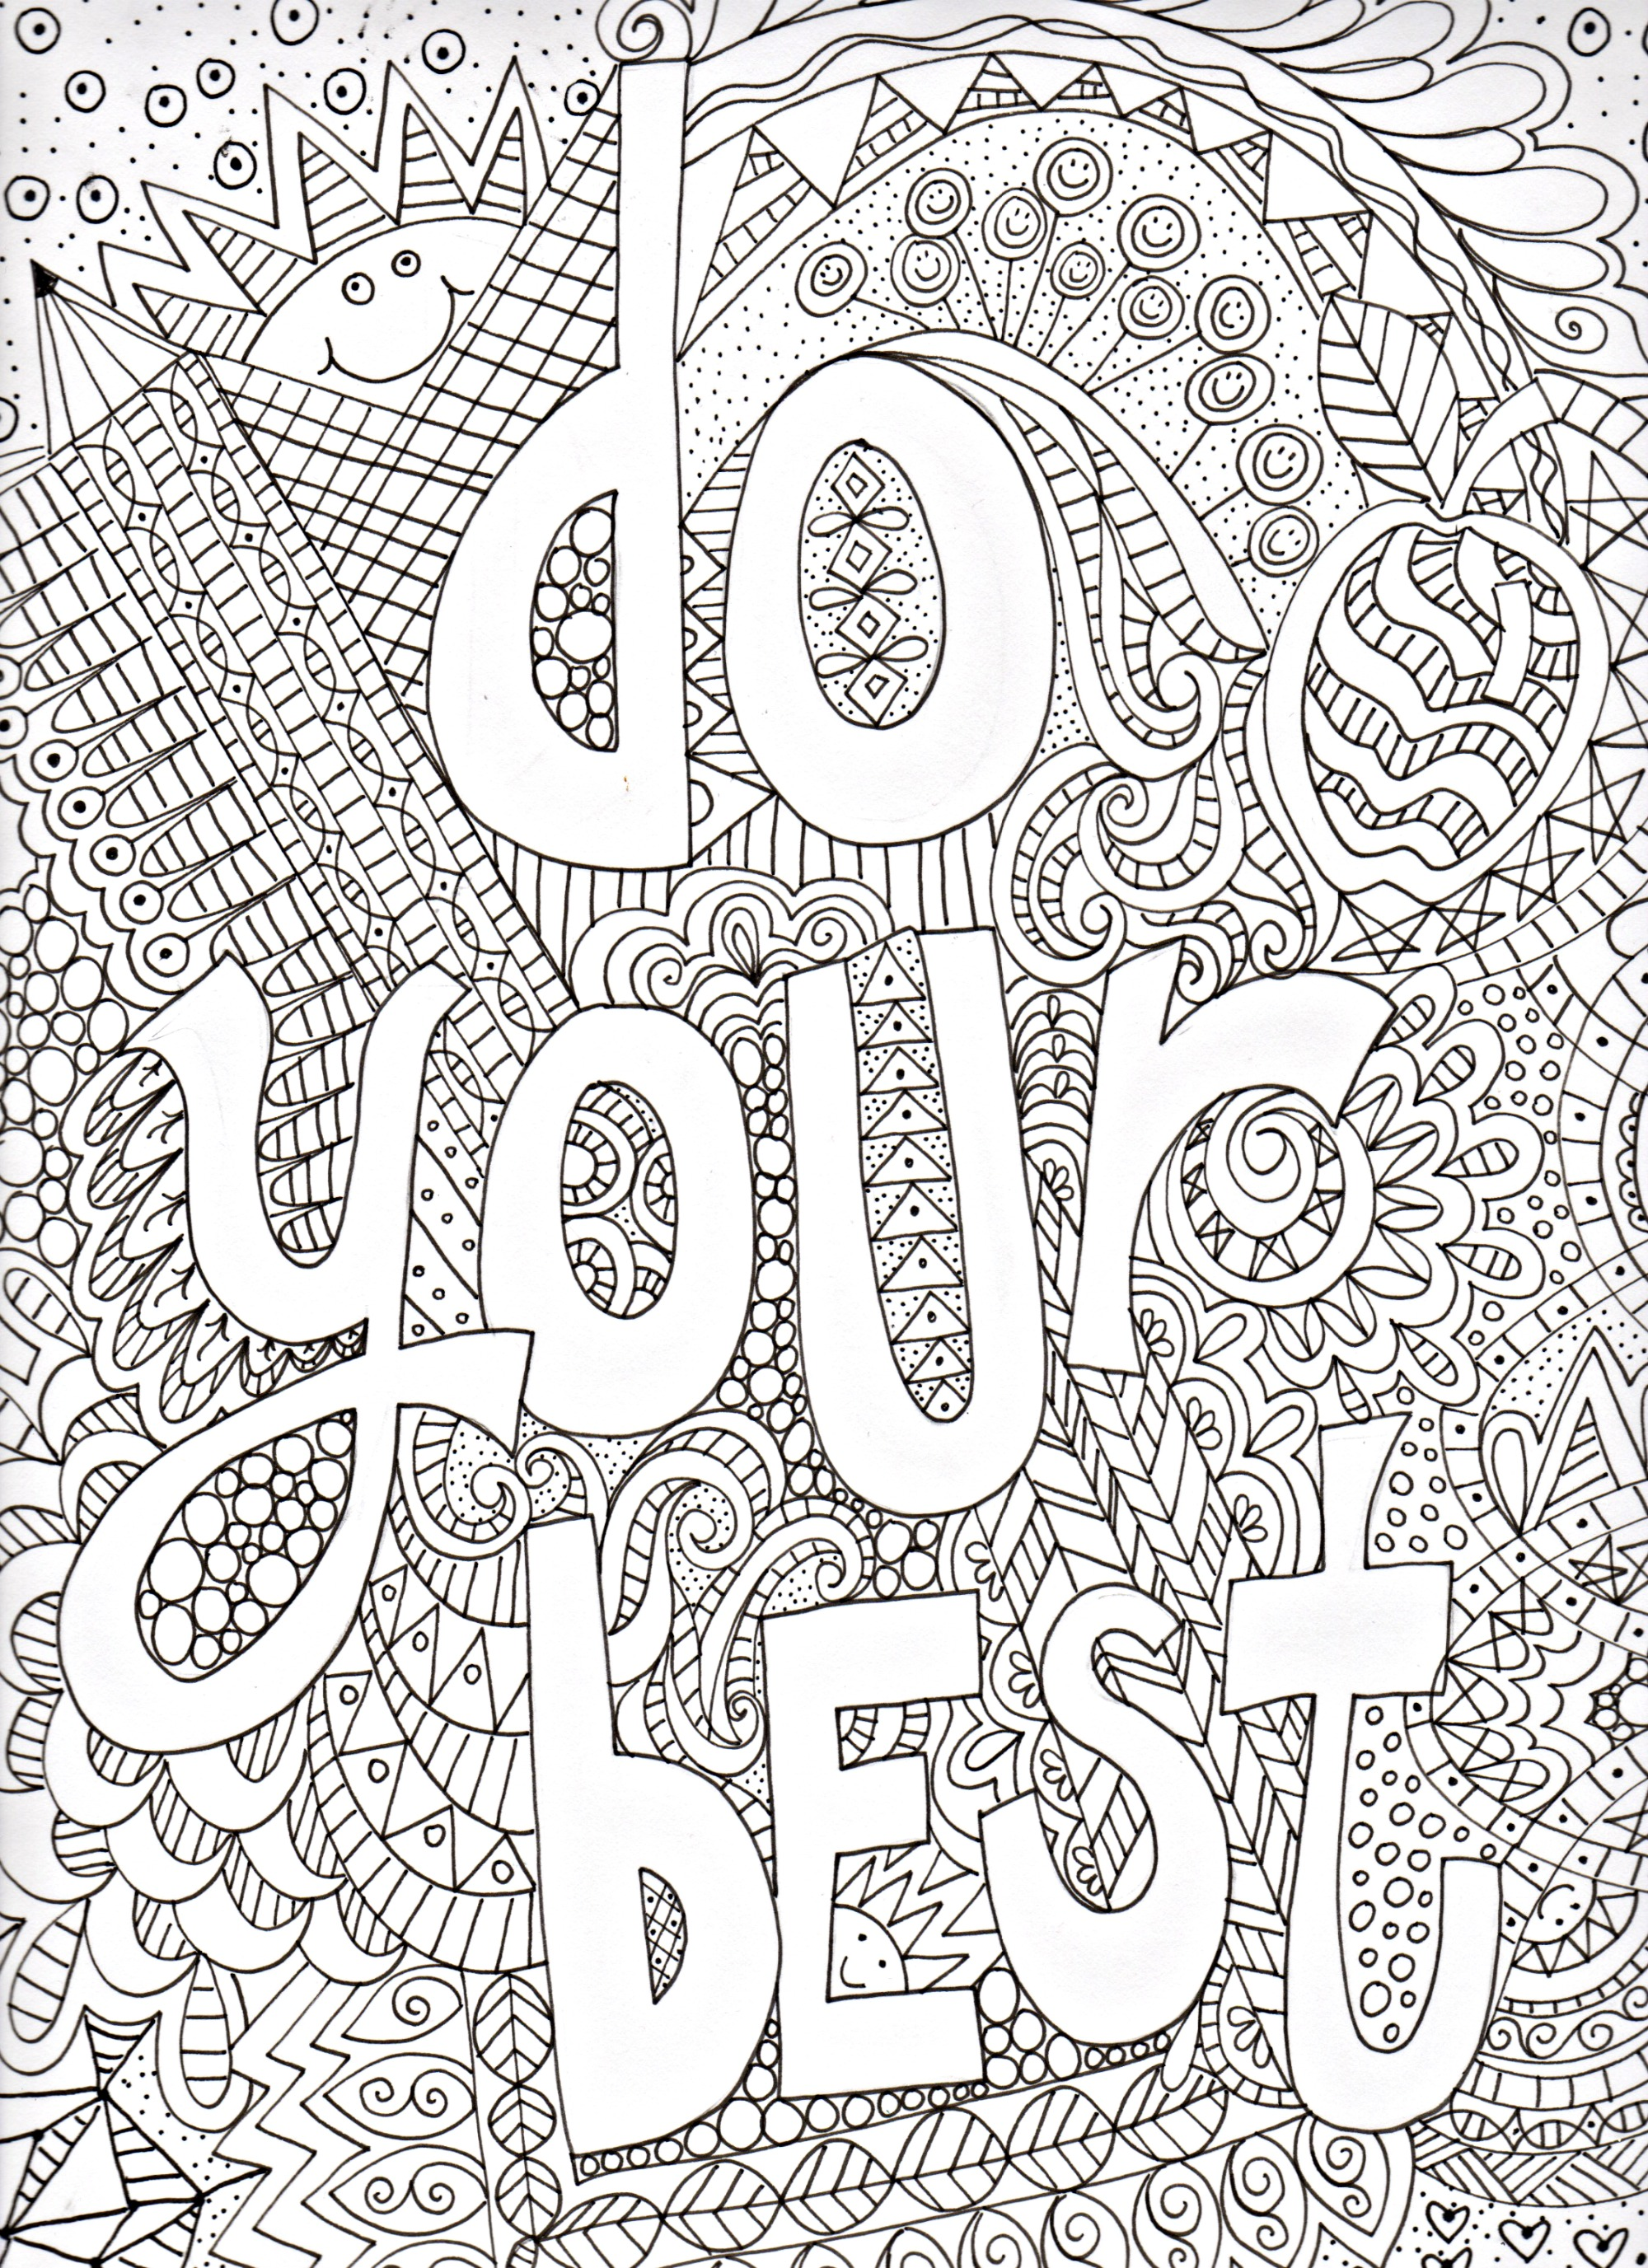 Motivational Poster to Color | pamelajeannestudio